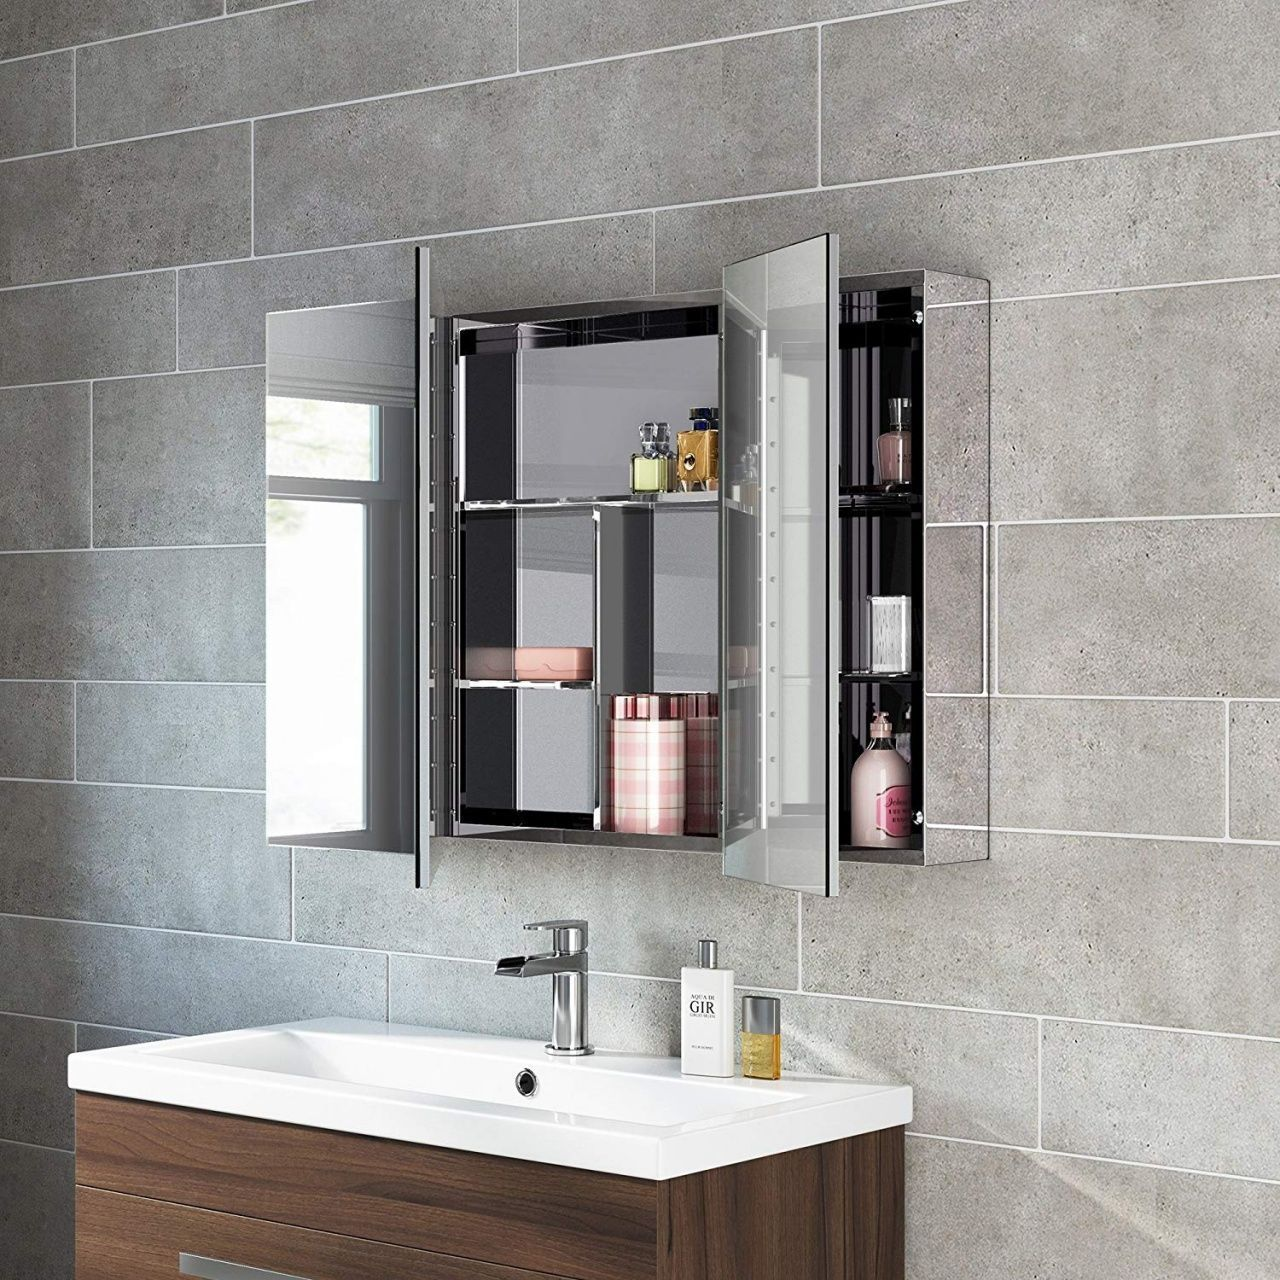 Replacement Mirror For Bathroom Medicine Cabinet The Effective Pictures We Offe Bathroom Cabine Mirror Cabinets Bathroom Mirror Cabinet Mirror Design Wall [ 1280 x 1280 Pixel ]